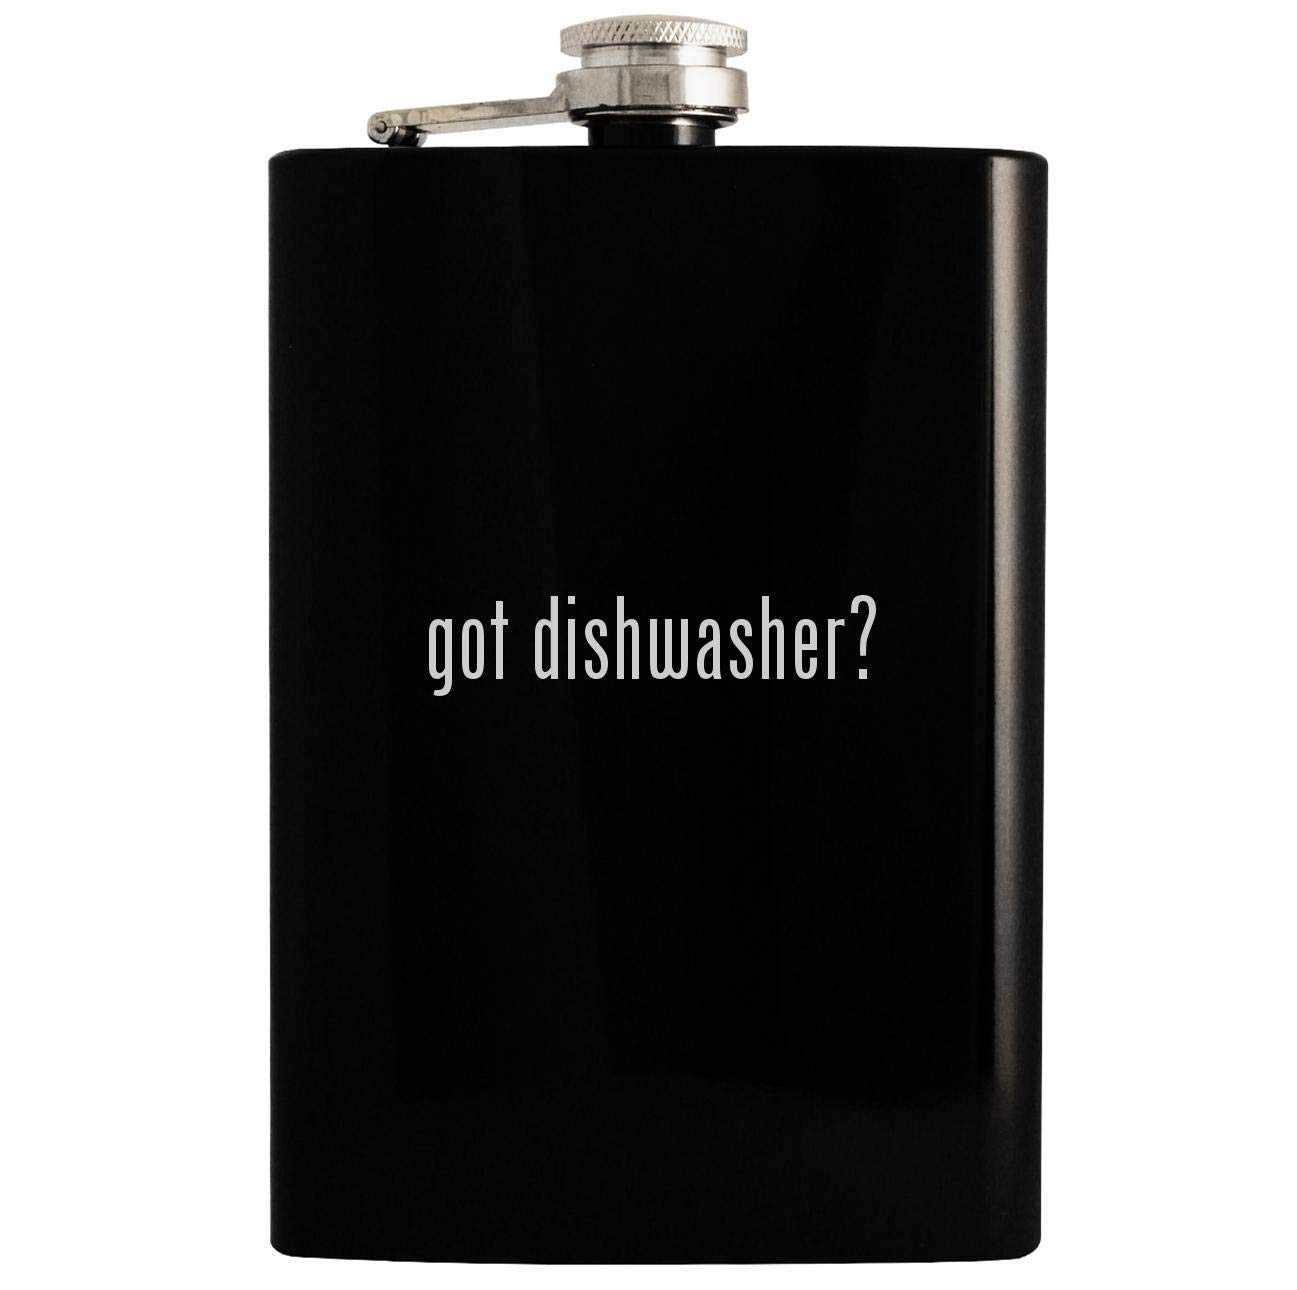 got dishwasher? - 8oz Hip Drinking Alcohol Flask, Black